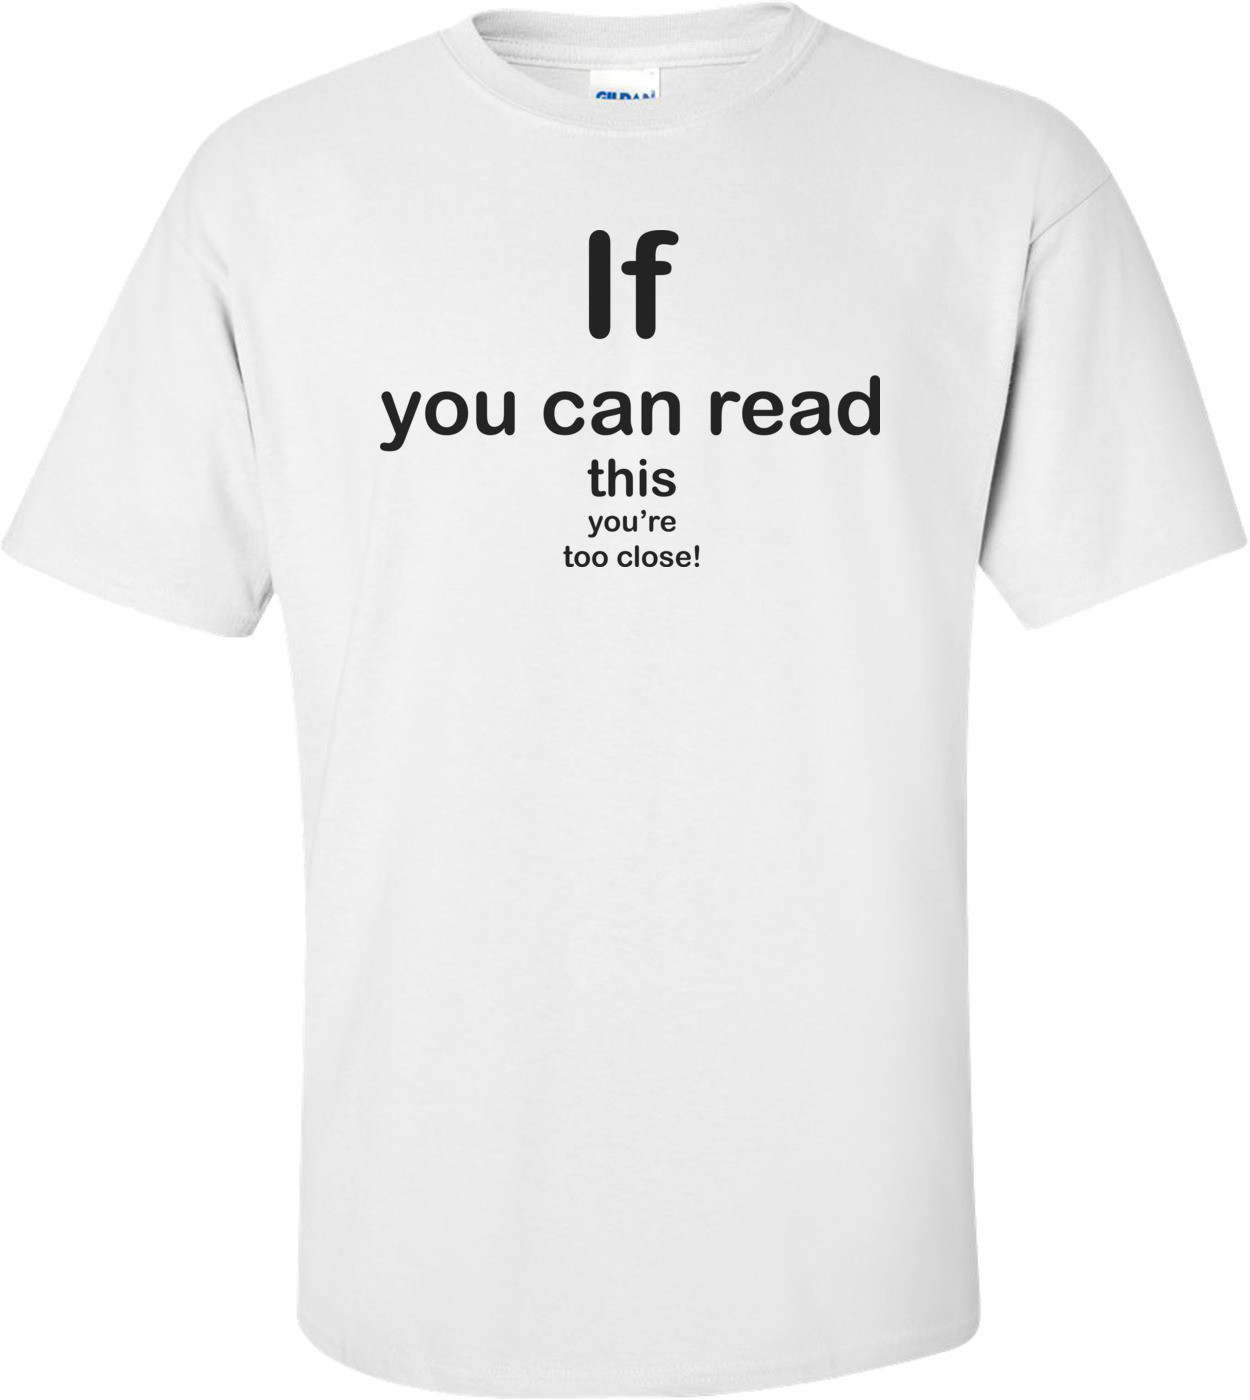 If You Can Read This, You're Too Close Funny Shirt